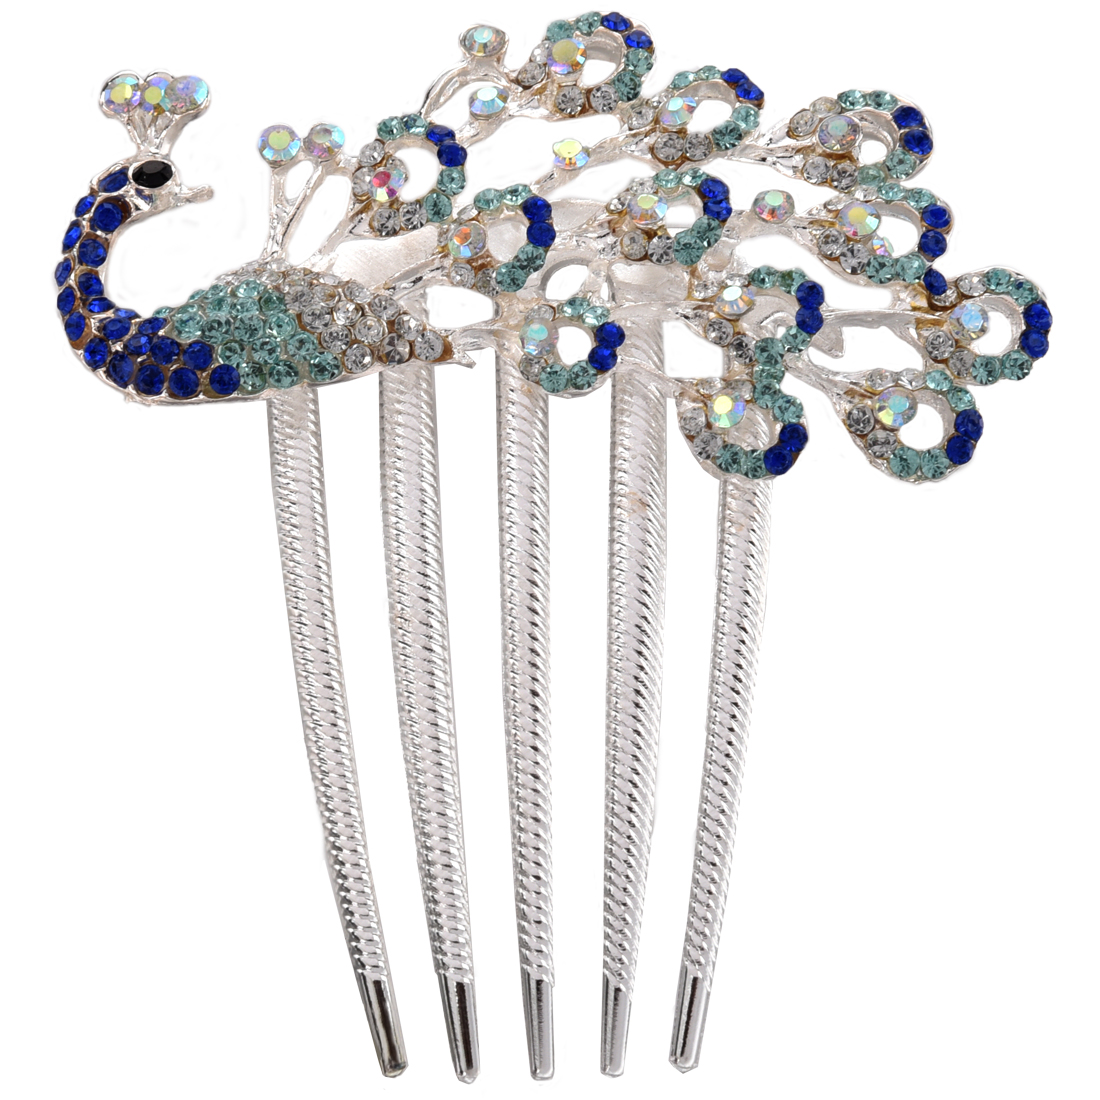 Lovely Vintage Jewelry Crystal Peacock Hair Clips For Hair Clip Beauty Tools